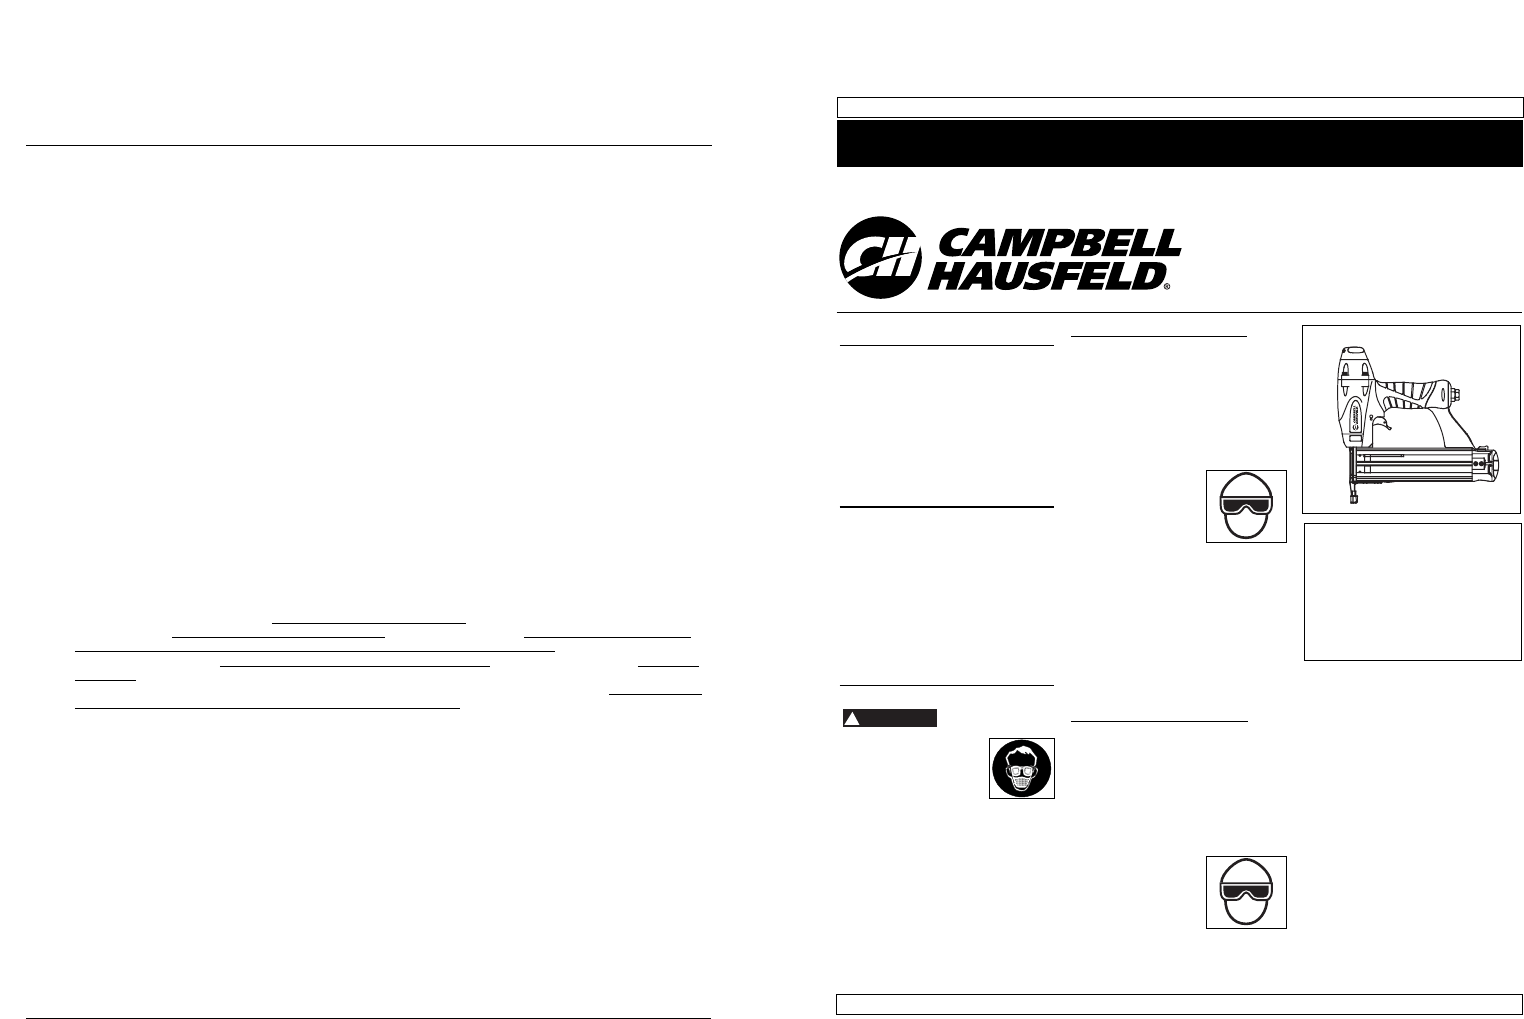 Campbell Hausfeld Nail Gun CHN102 User Guide